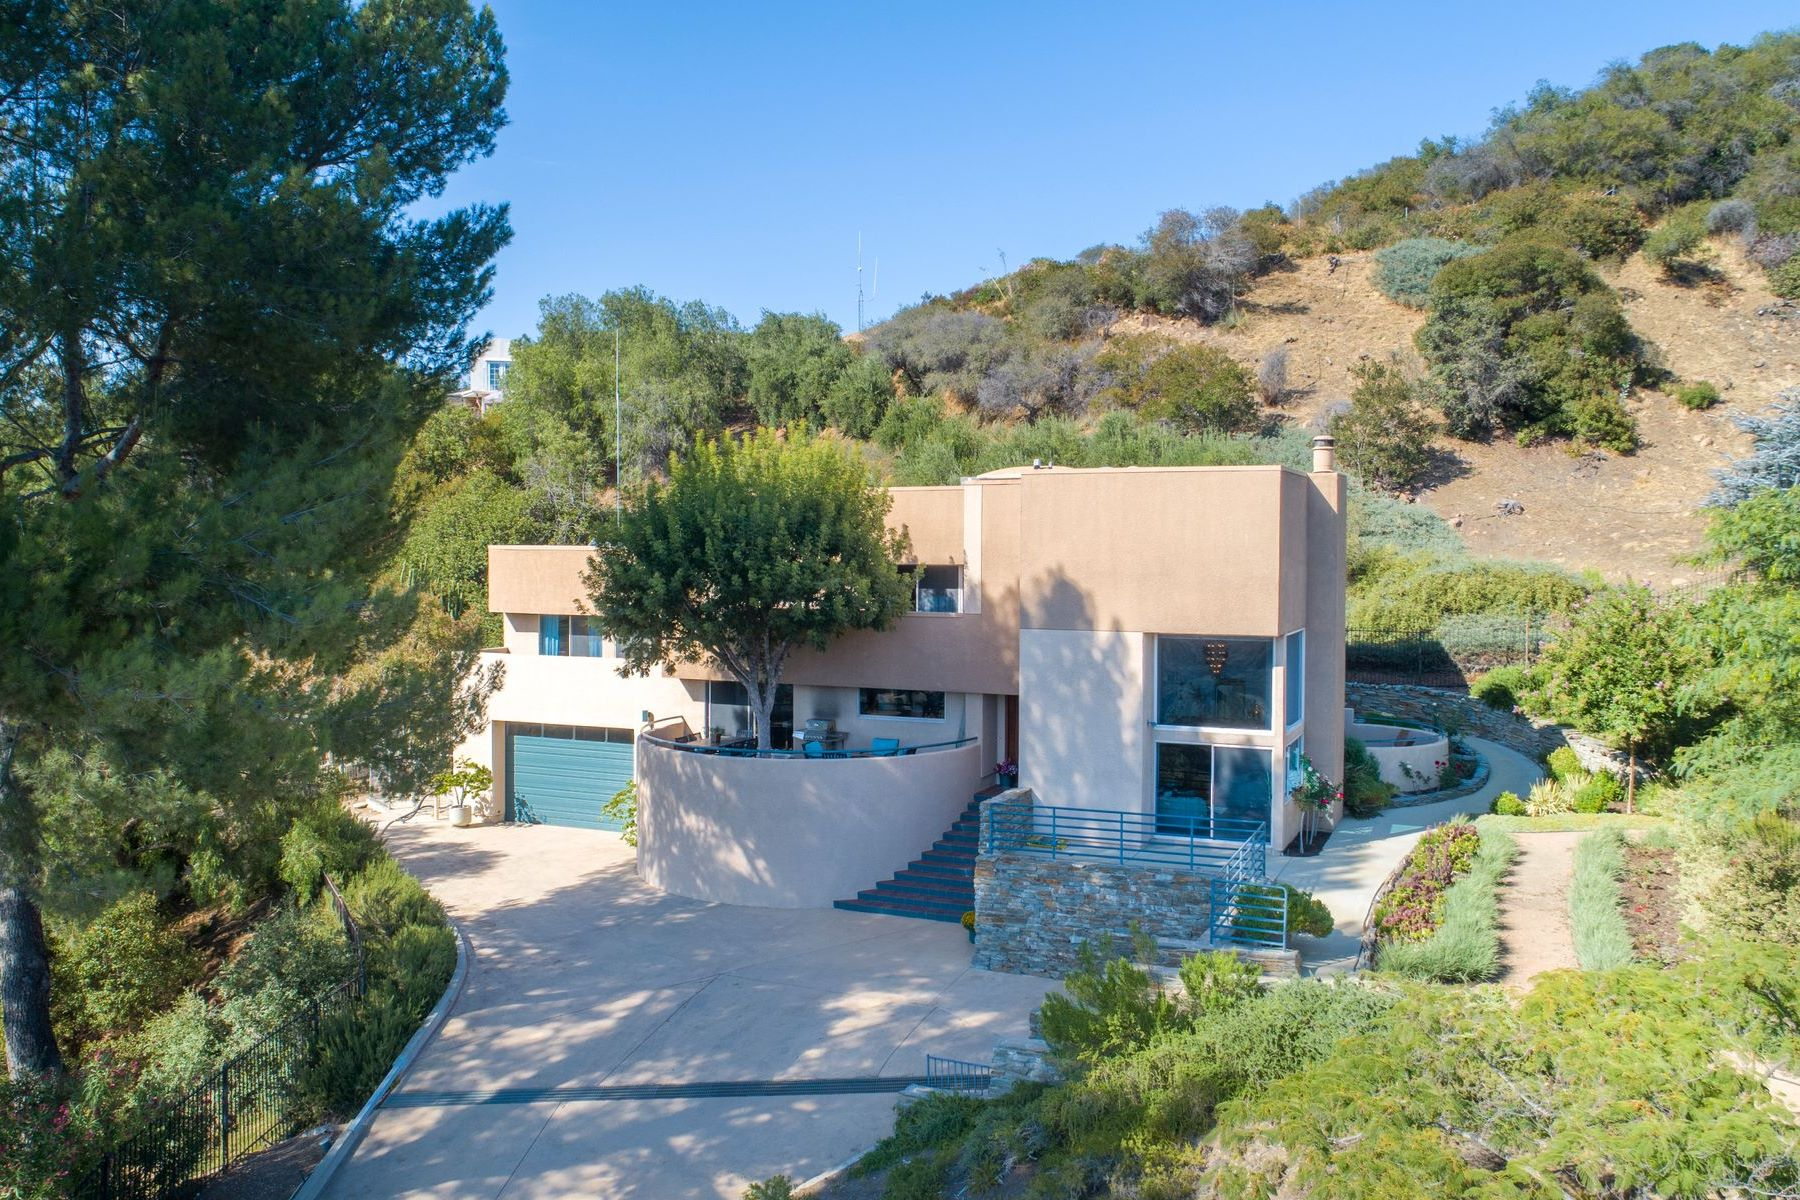 Single Family Homes for Sale at 1.4 ACRES ADJACENT TO PARK 20711 Hillside Drive Topanga, California 90290 United States